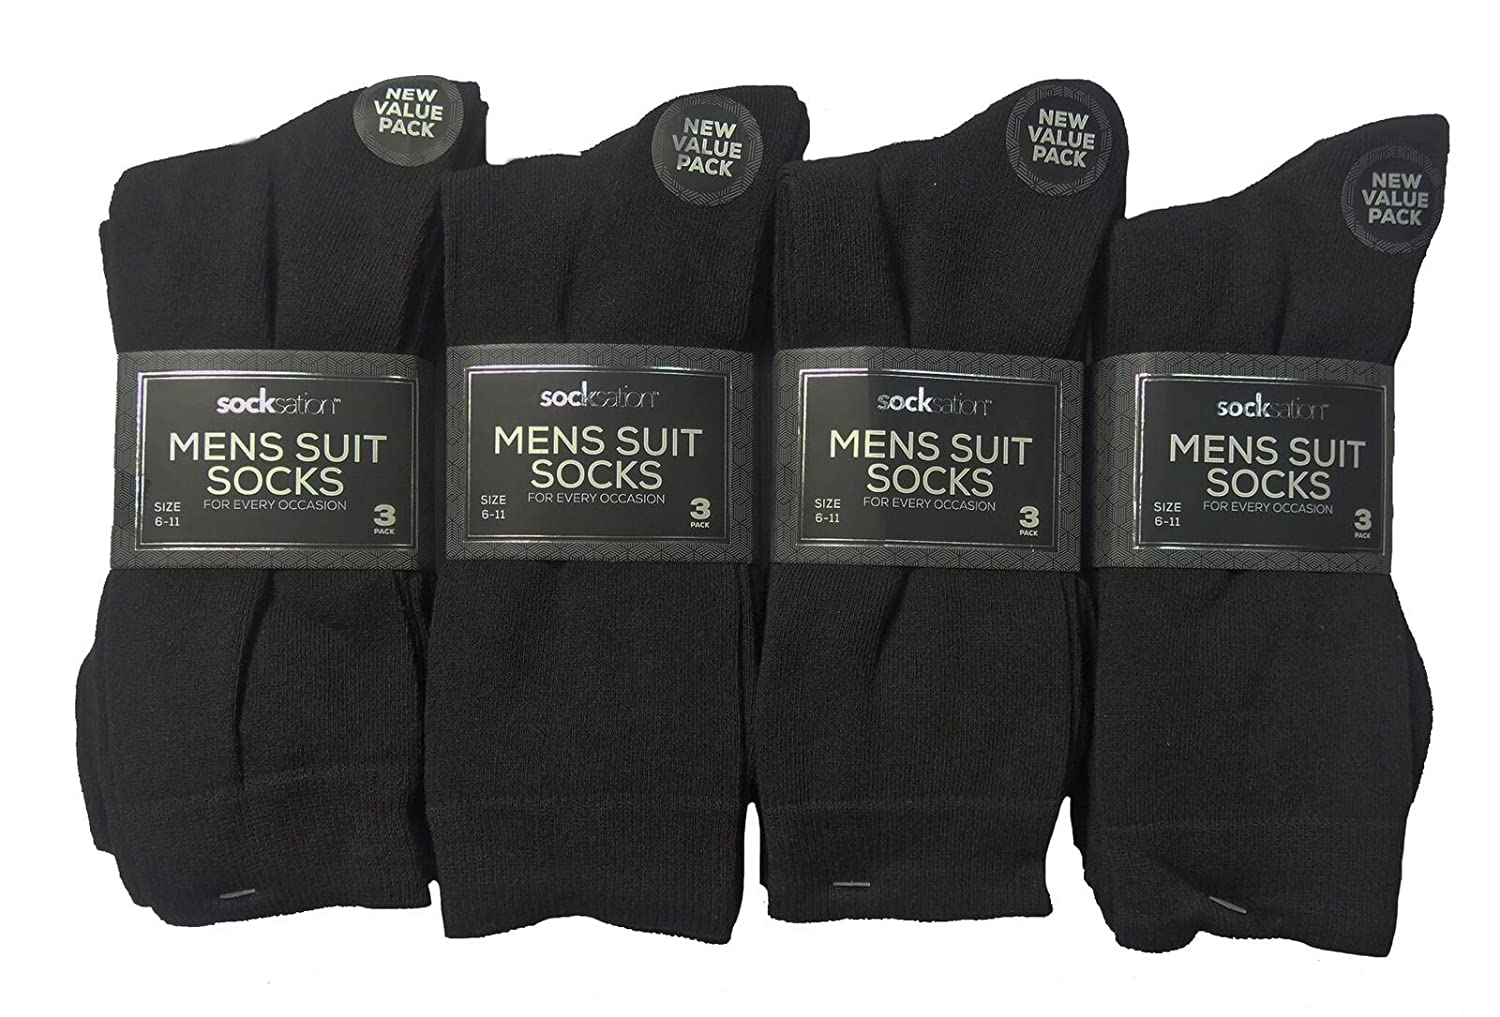 Mens Socks Black 6, 12 Pack Cotton Plain Adults Black Grey and Navy Size UK 6-11